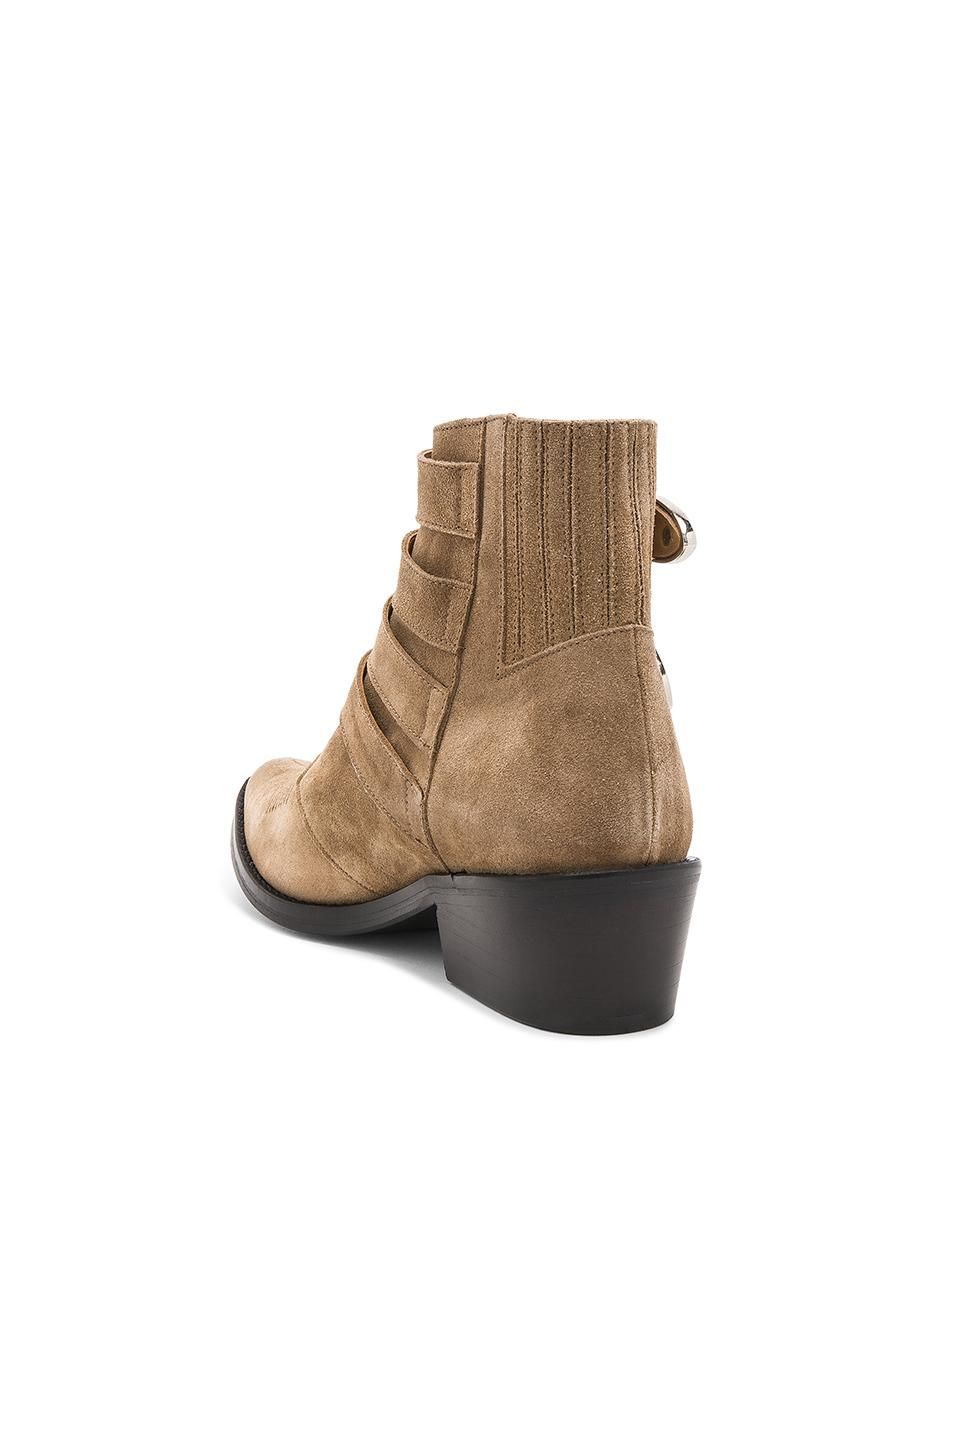 Toga Suede Western Buckle Bootie in Khaki Suede (Natural)